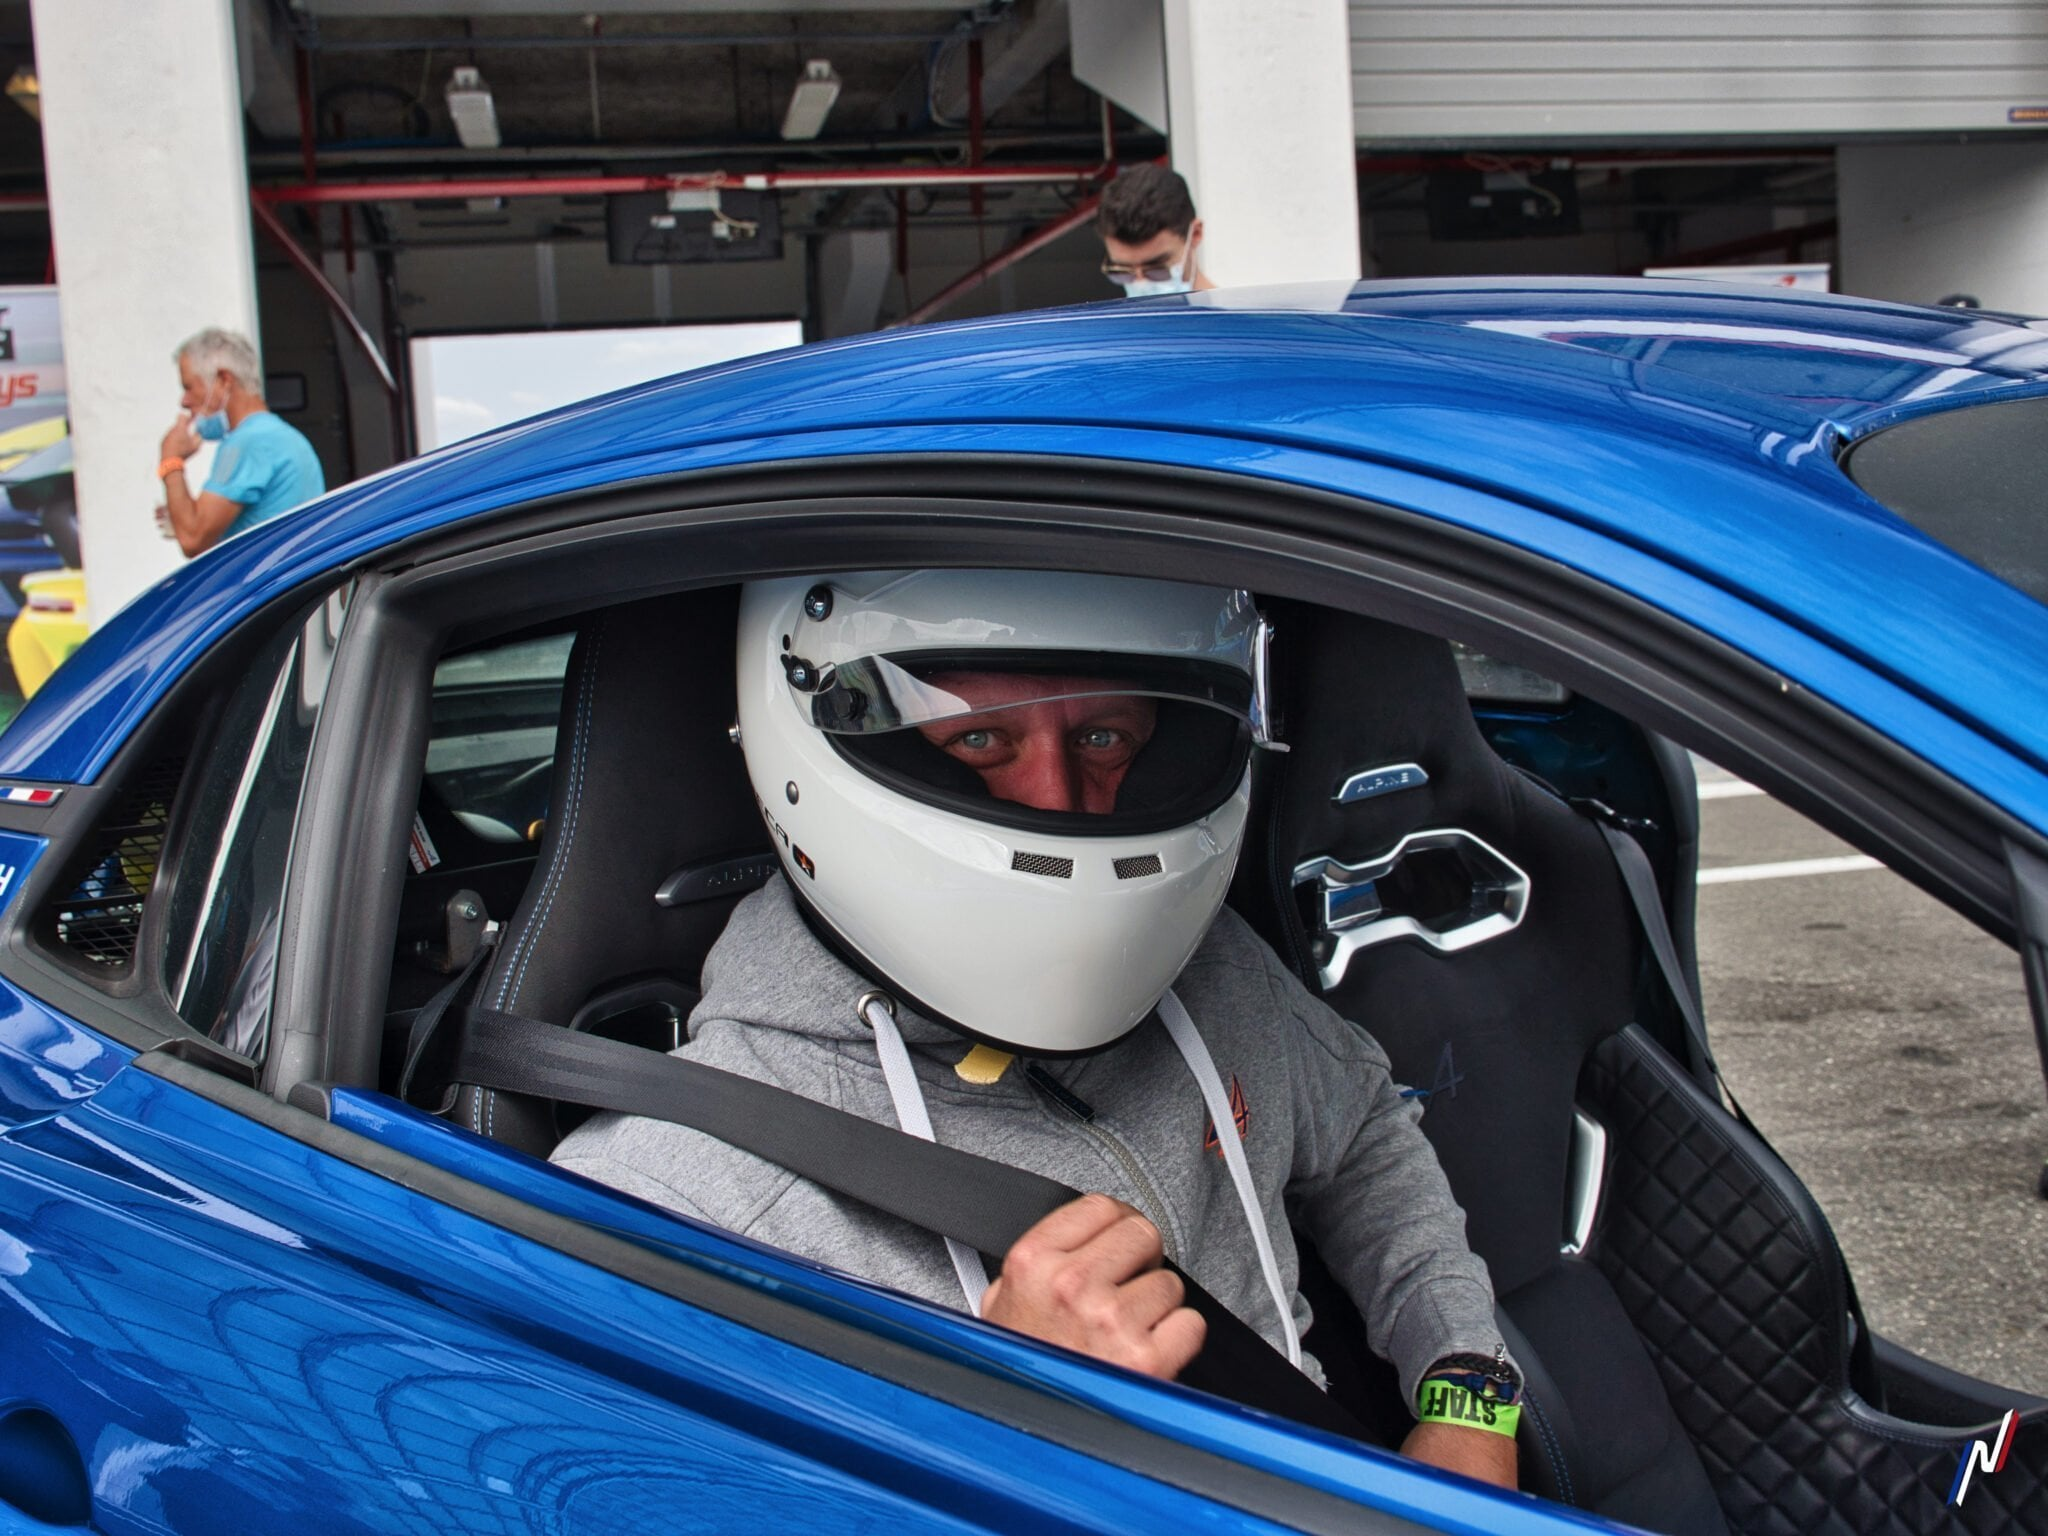 Motorsport Mag Track Day Magny Cours Alpine A110  P1110009 Alpine Planet | Track Day Motorsport 2020 : Magny-Cours, des Alpine et du fun !